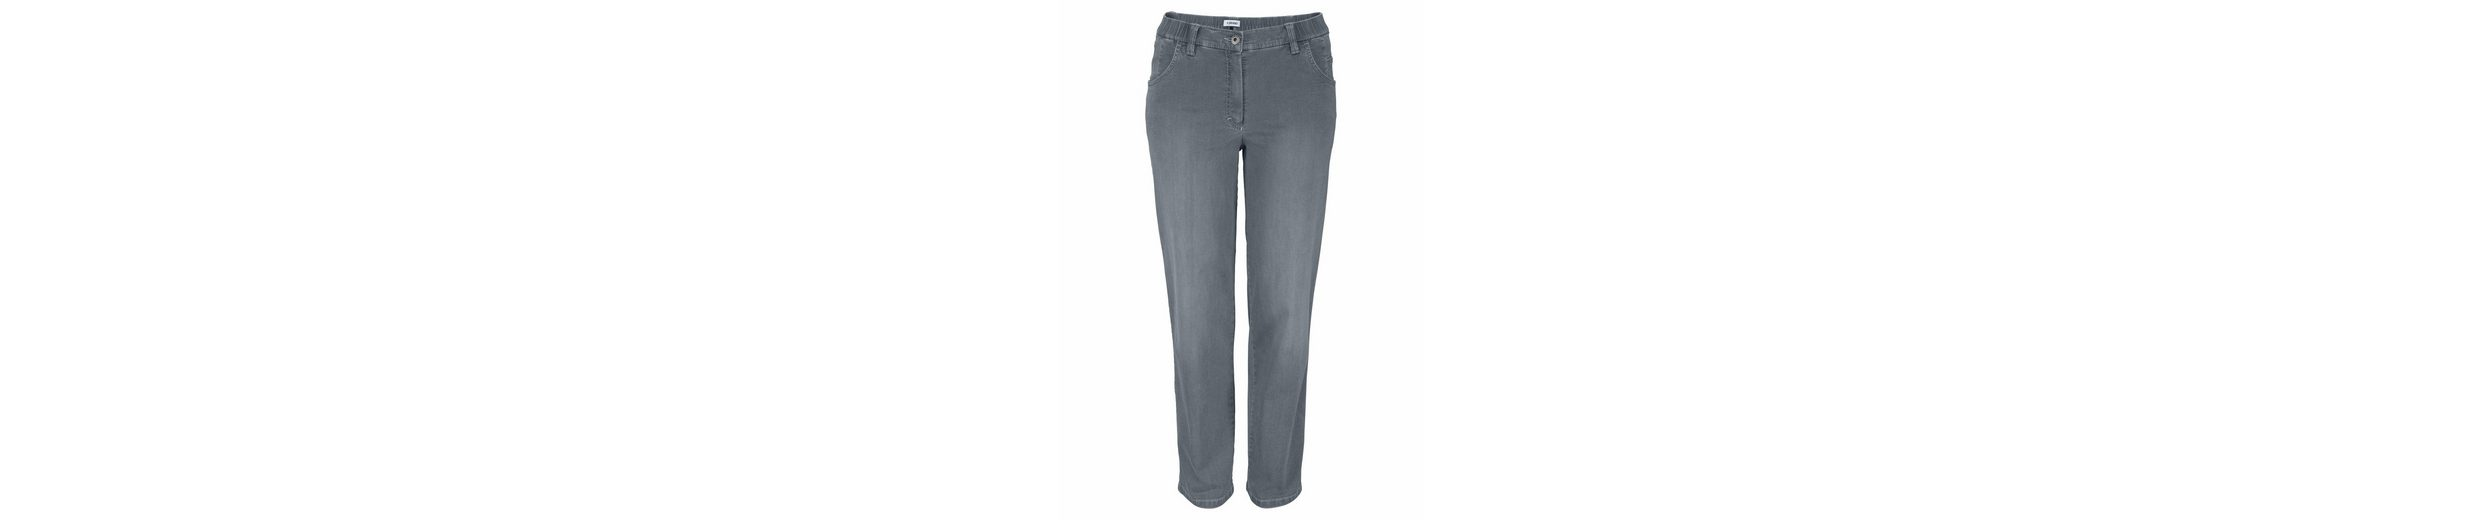 KjBRAND KjBRAND Jeans Super Babsie Straight Stretch Straight q8qxFZ